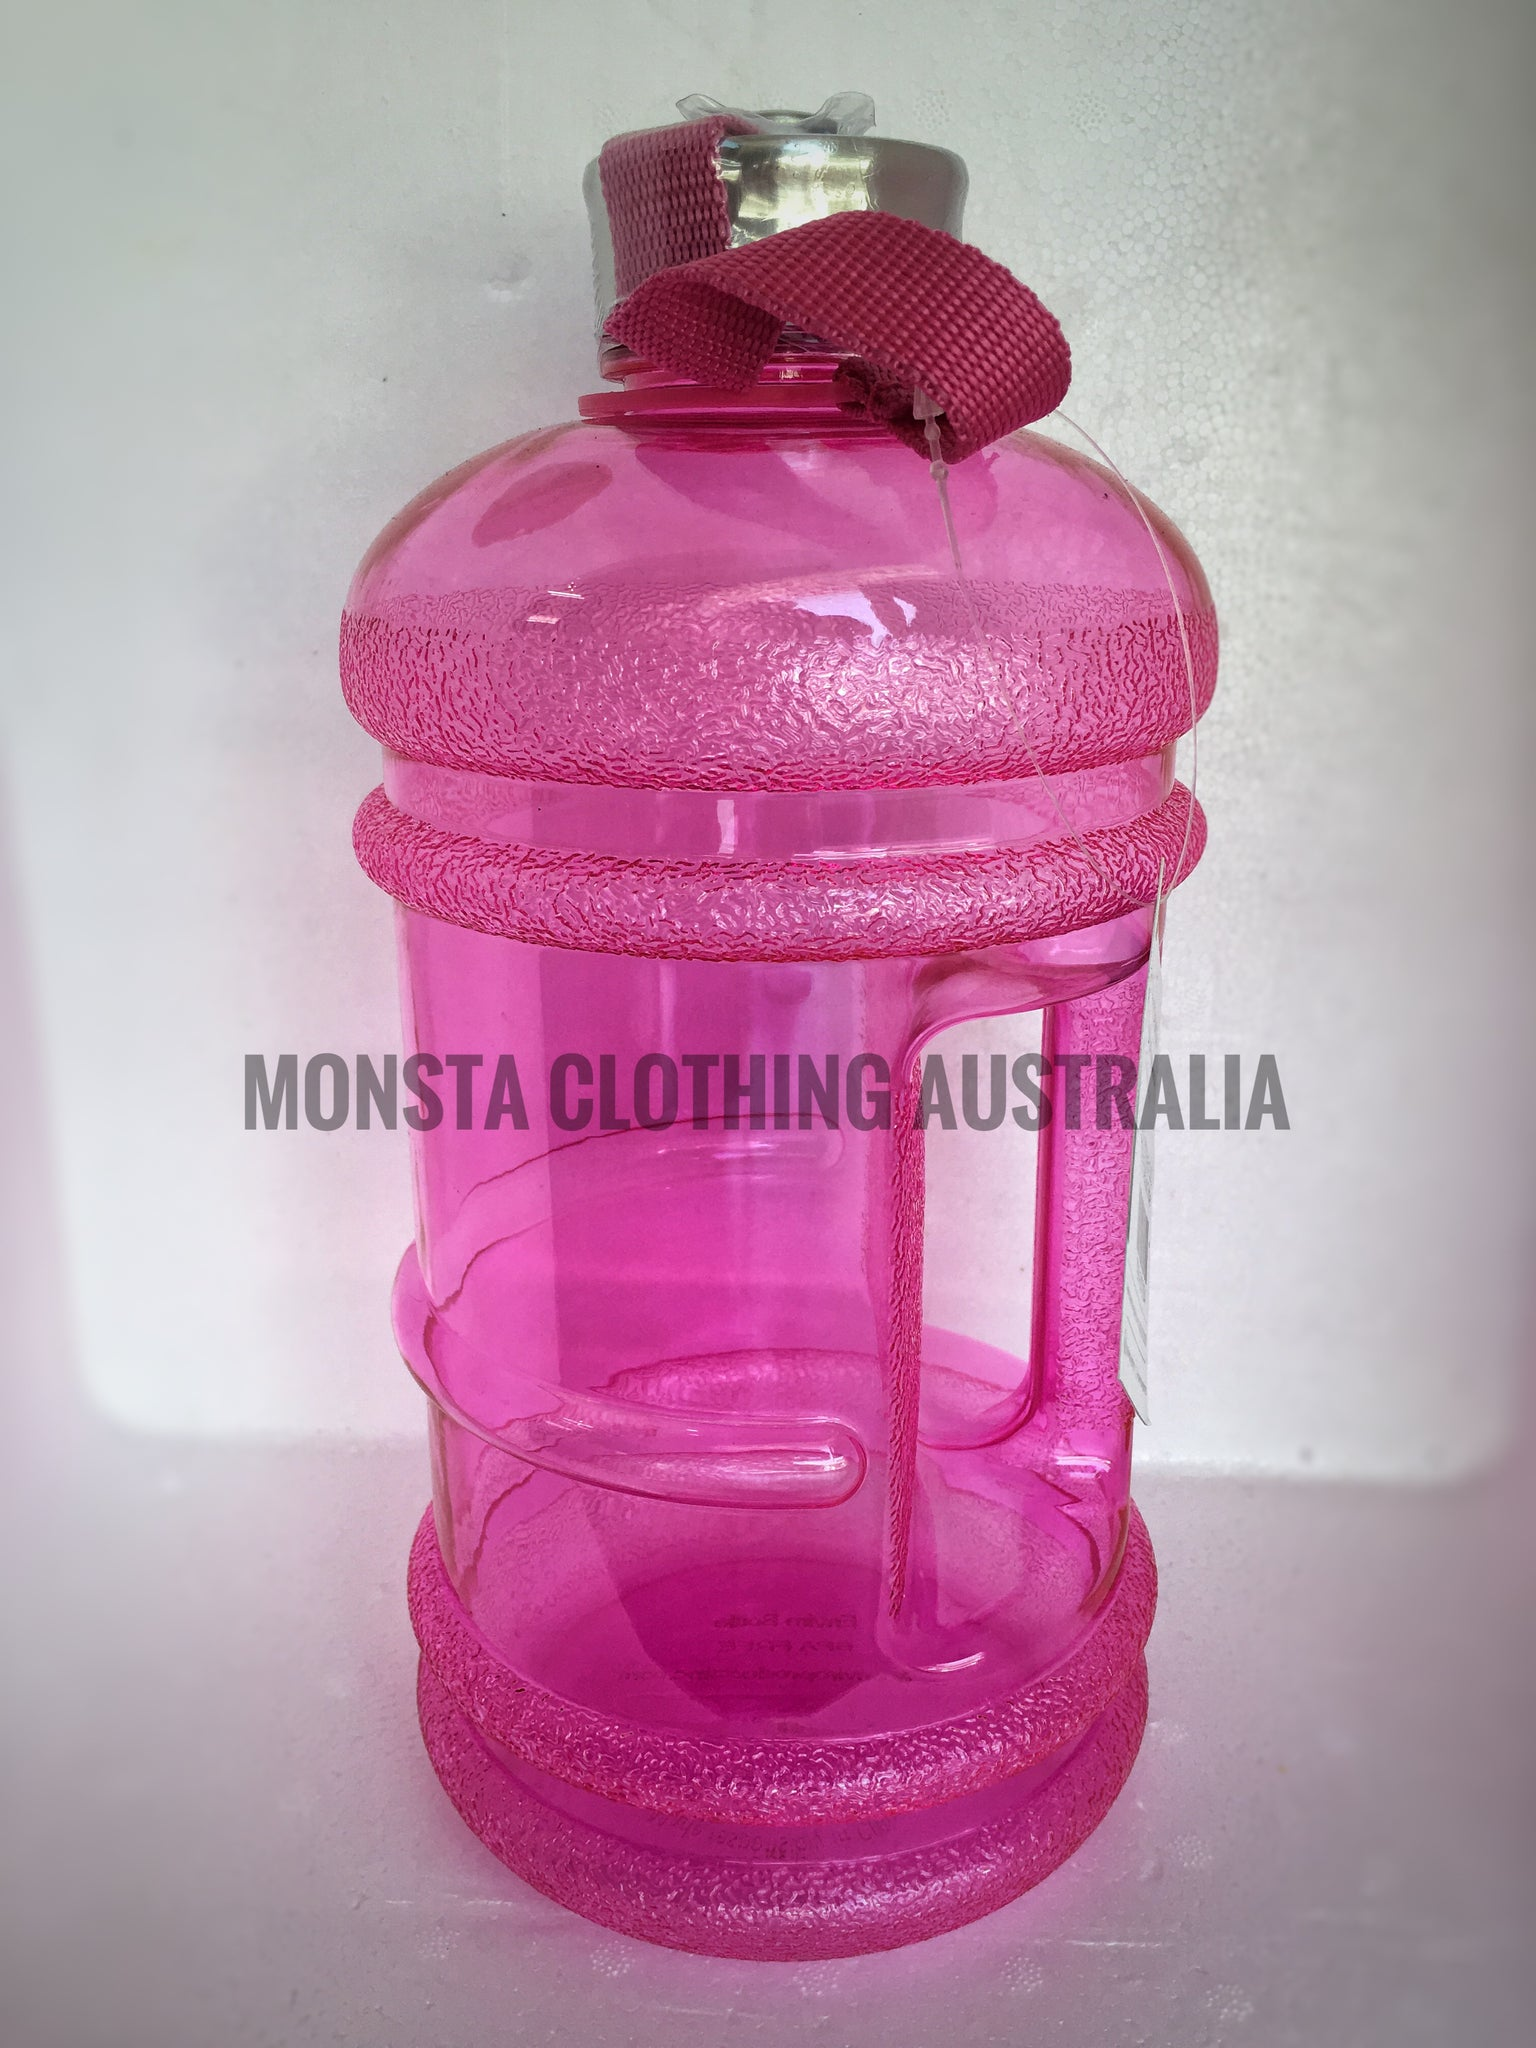 DRINK BOTTLE: 2.2L - Monsta Clothing Australia